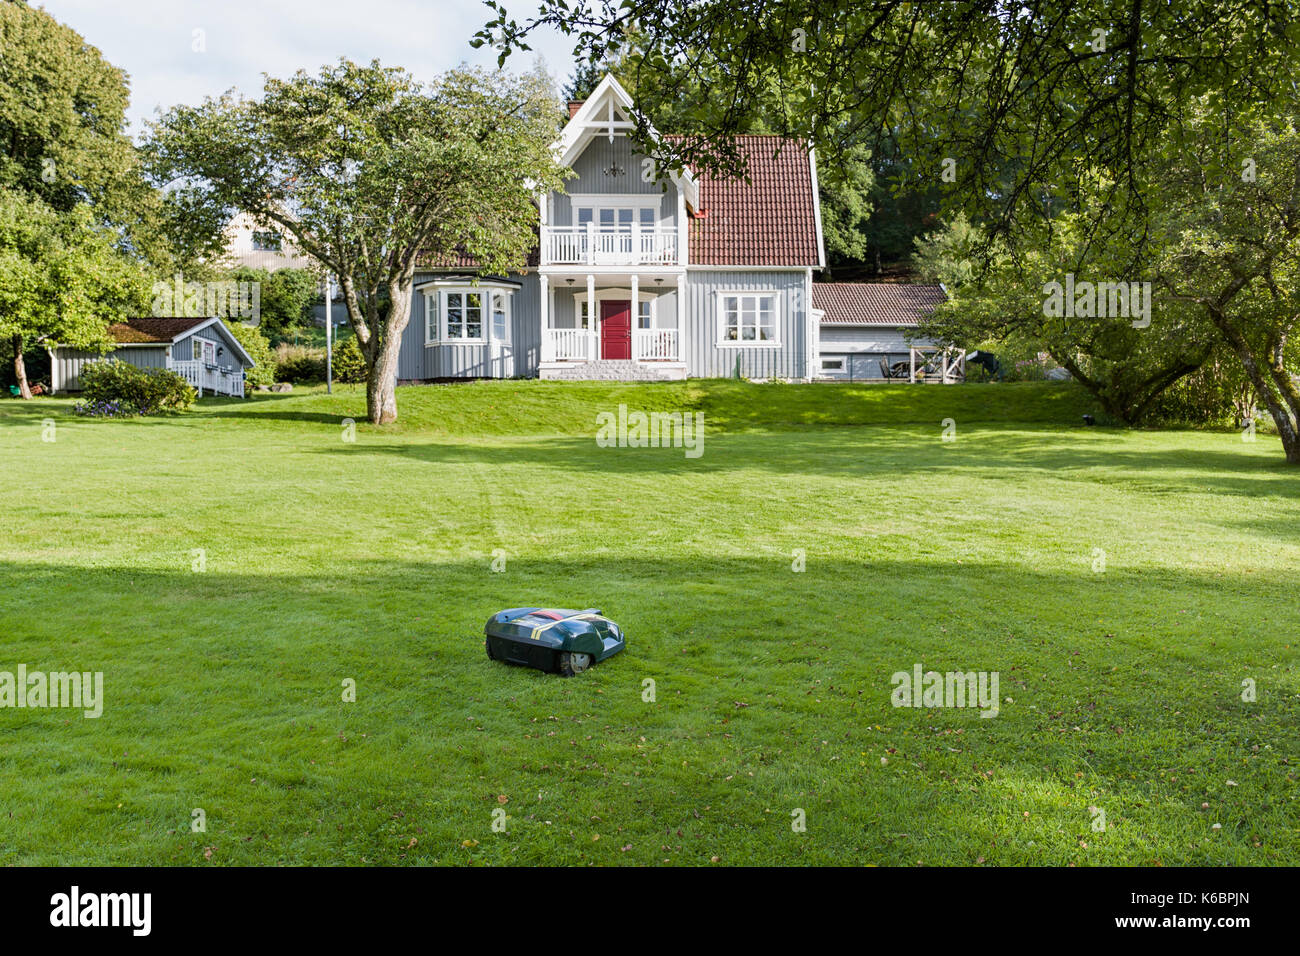 Robotic lawnmower on grass lawn in beautiful garden in front of idyllic wooden house  Model Release: No.  Property Stock Photo